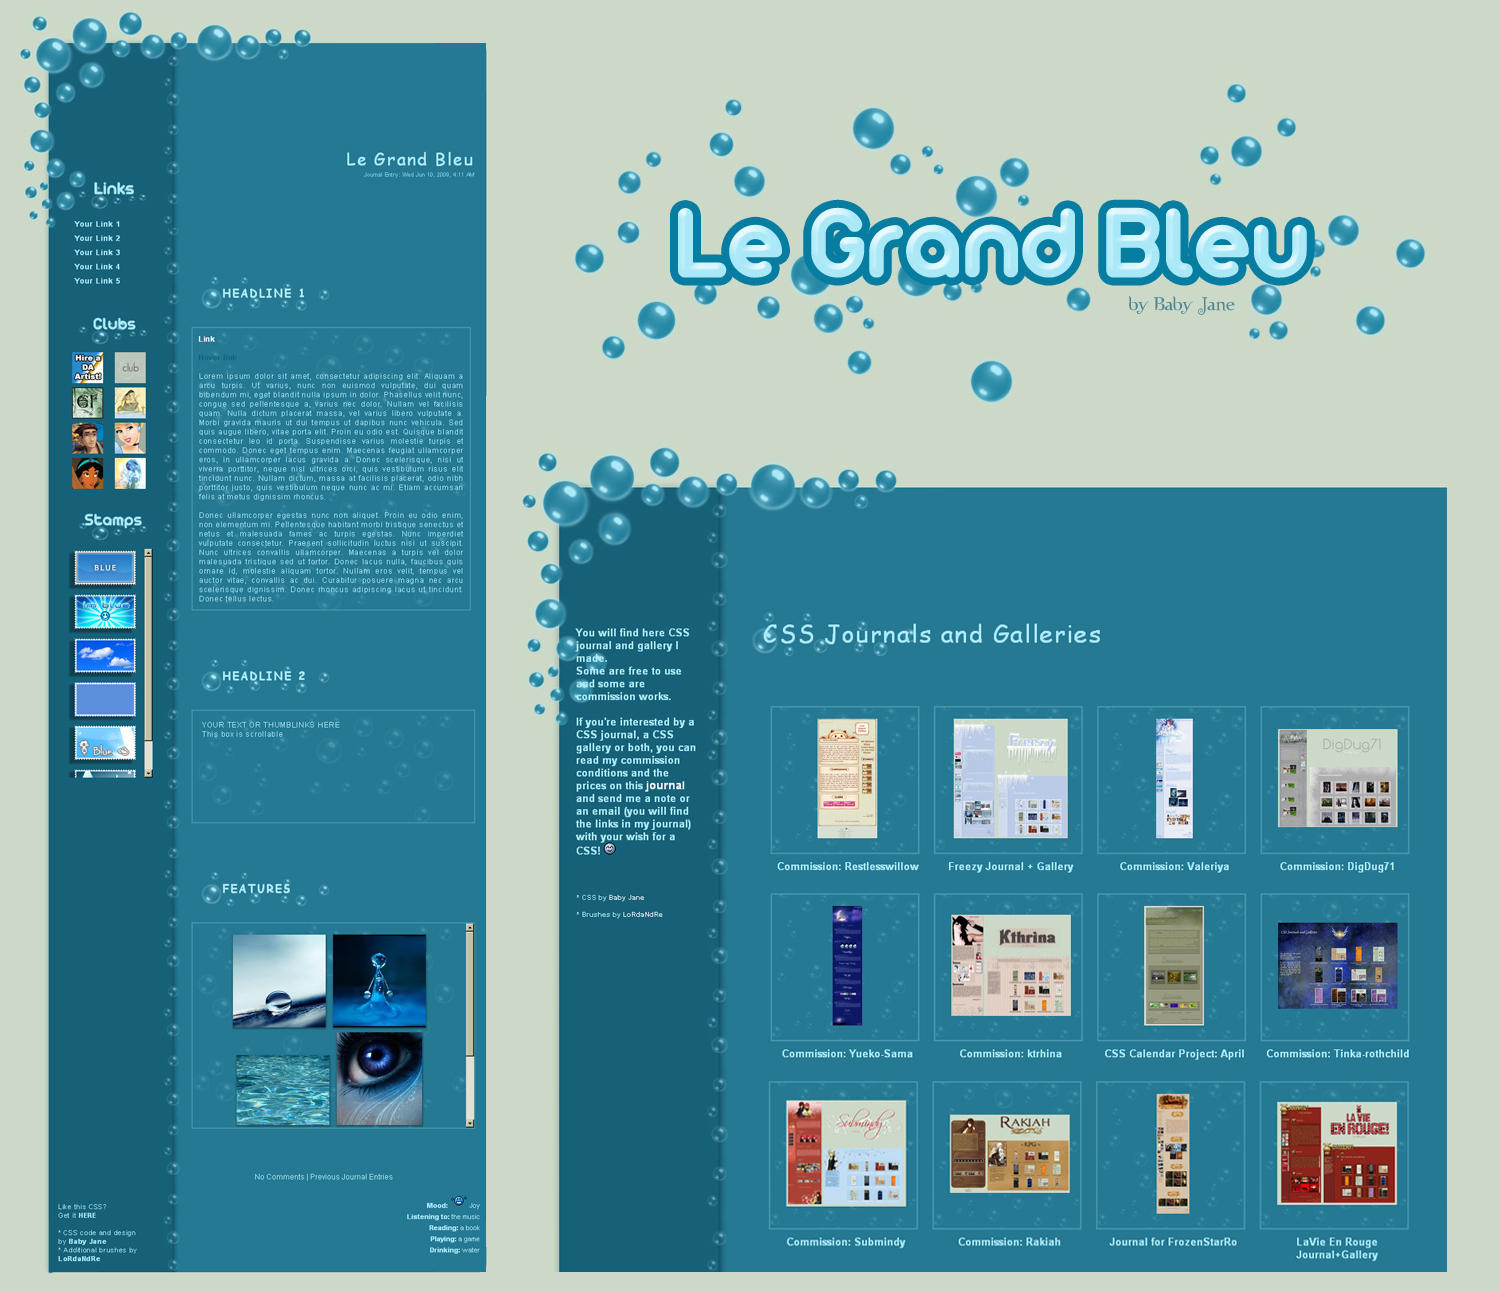 Le Grand Bleu Journal+Gallery by BaB-Jane